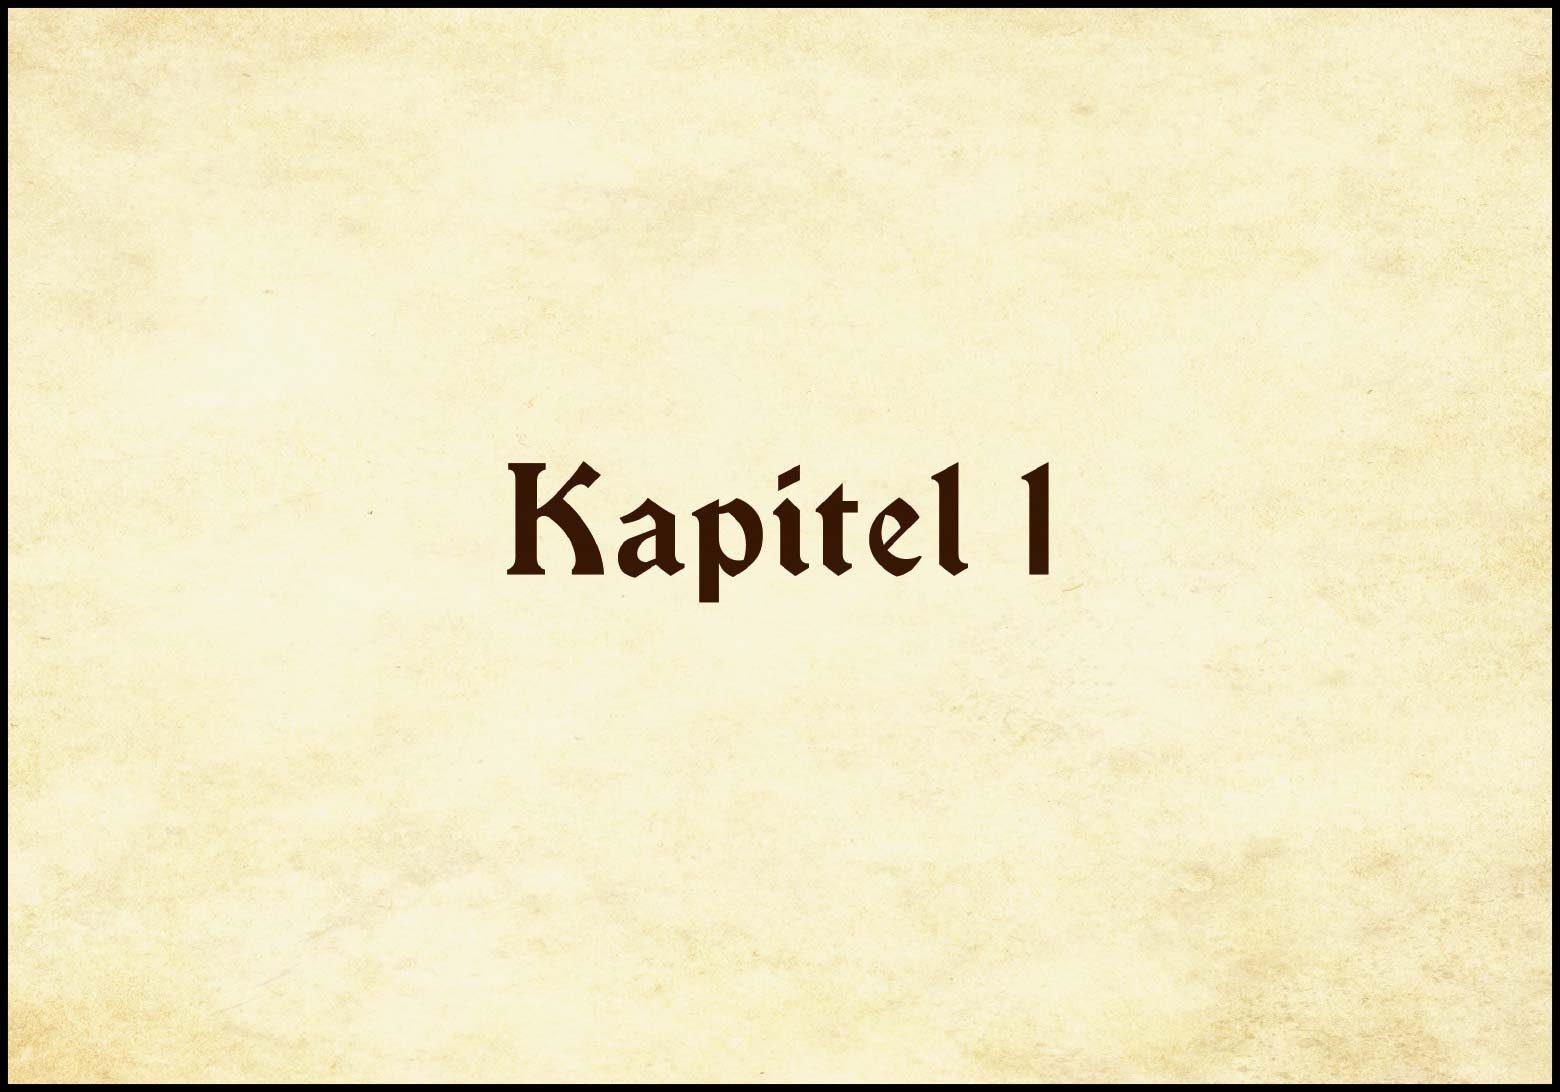 Band 1: Kapitel 1 (Online-Comic: Ritter Randolf)